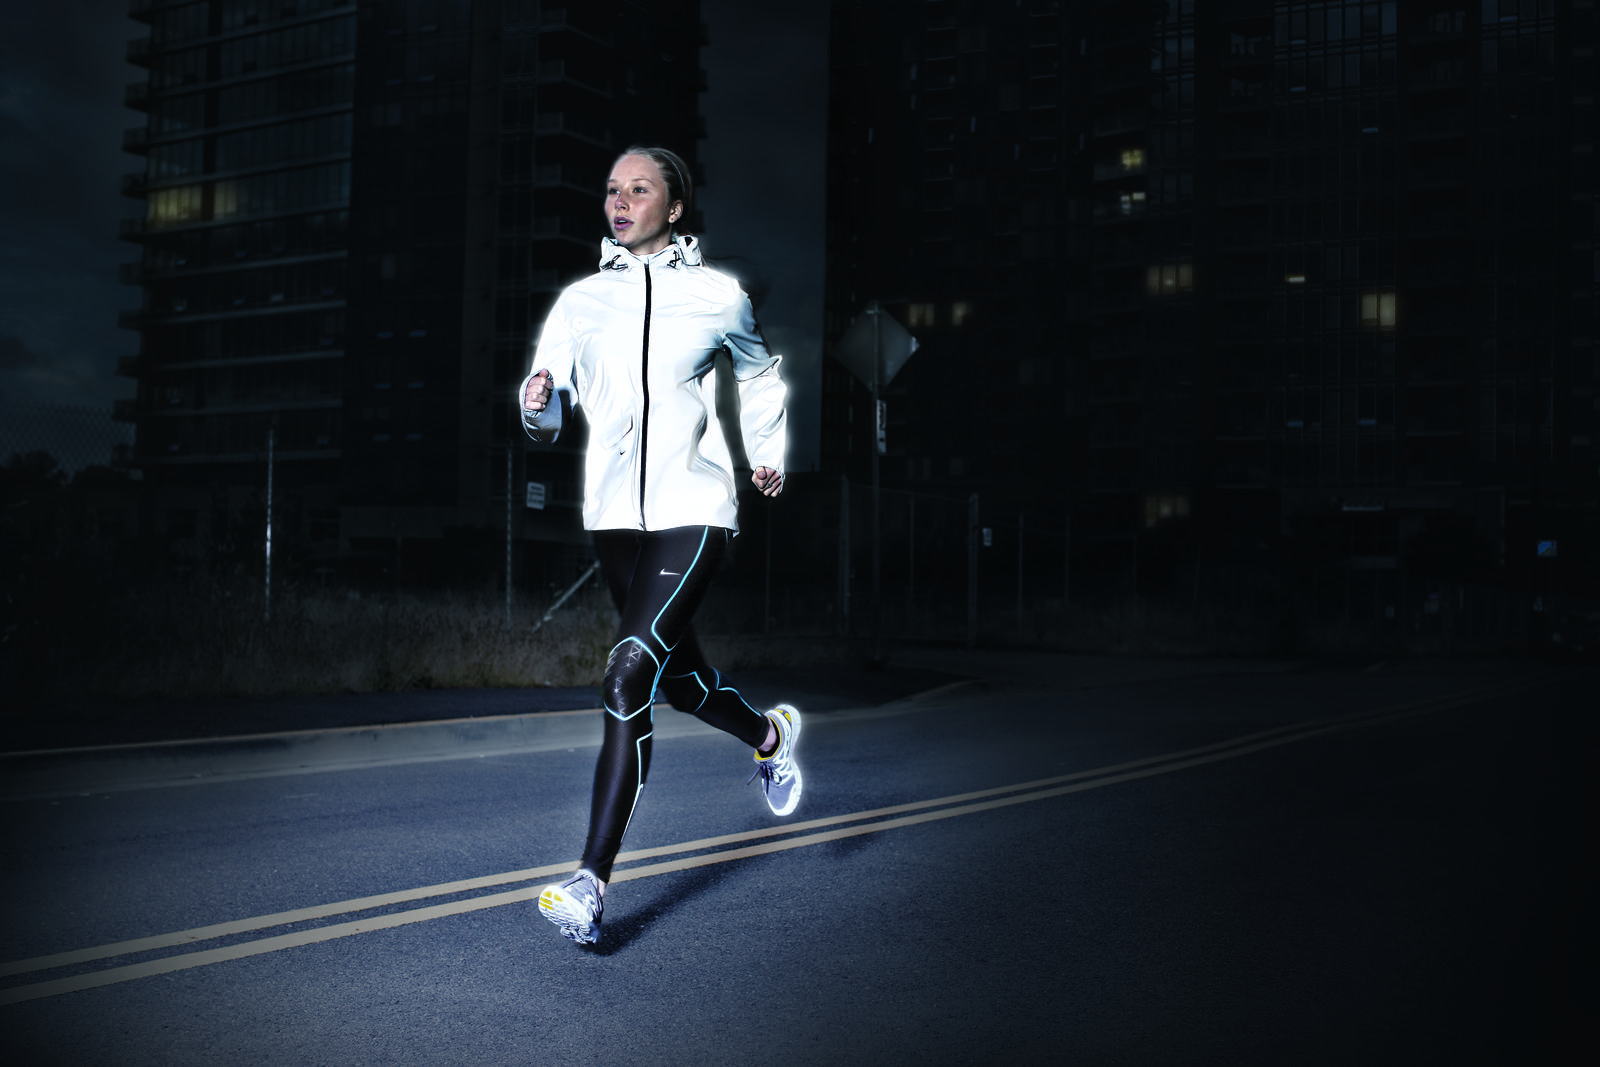 Nike reflective running gear